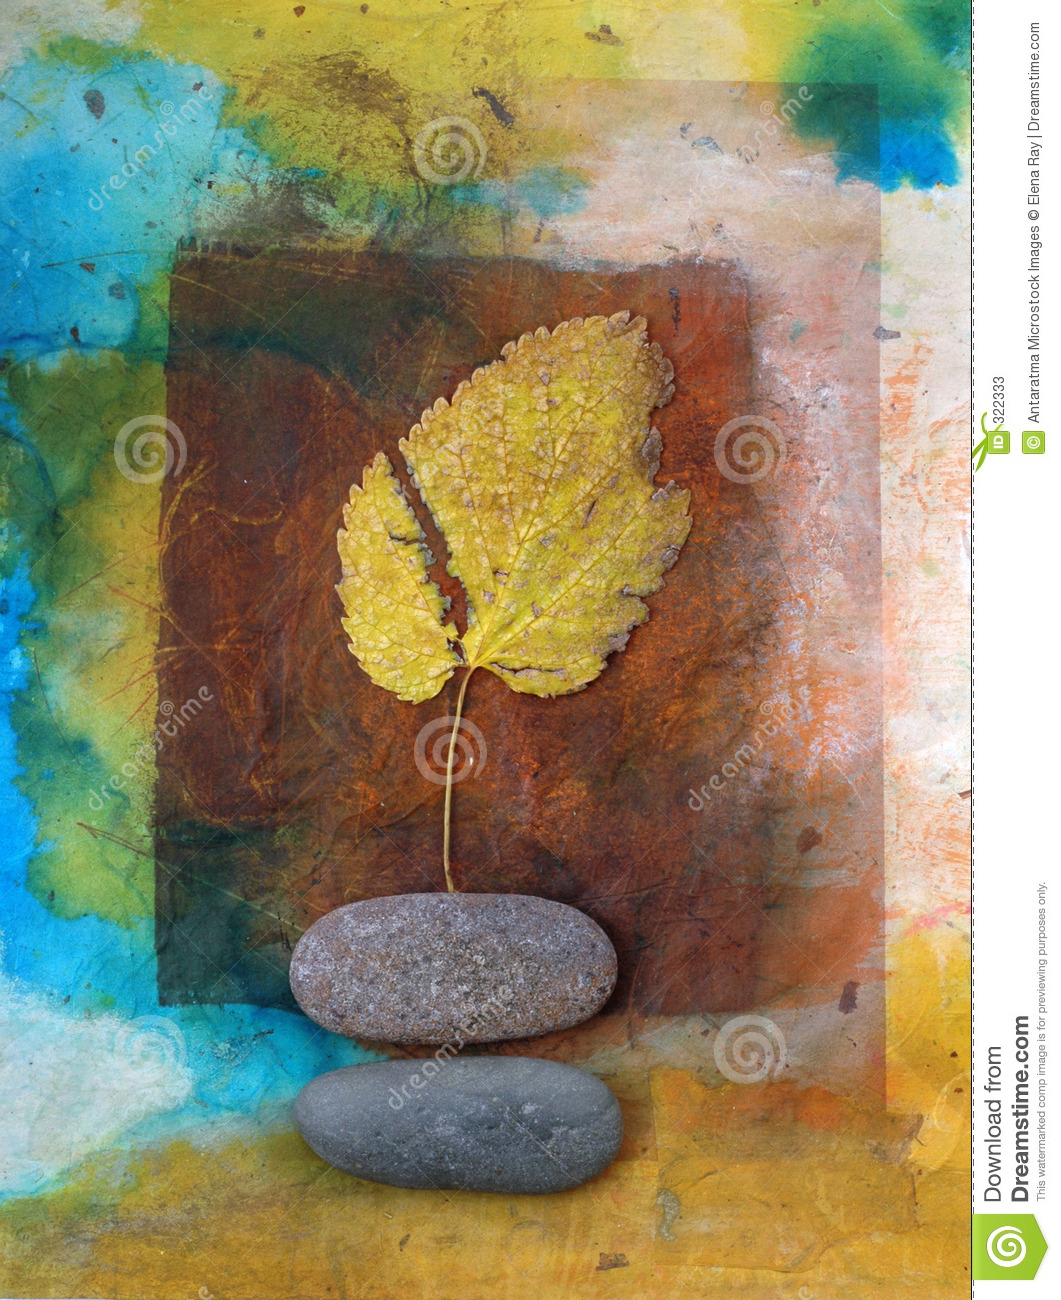 Yellow Leaf and River Stones